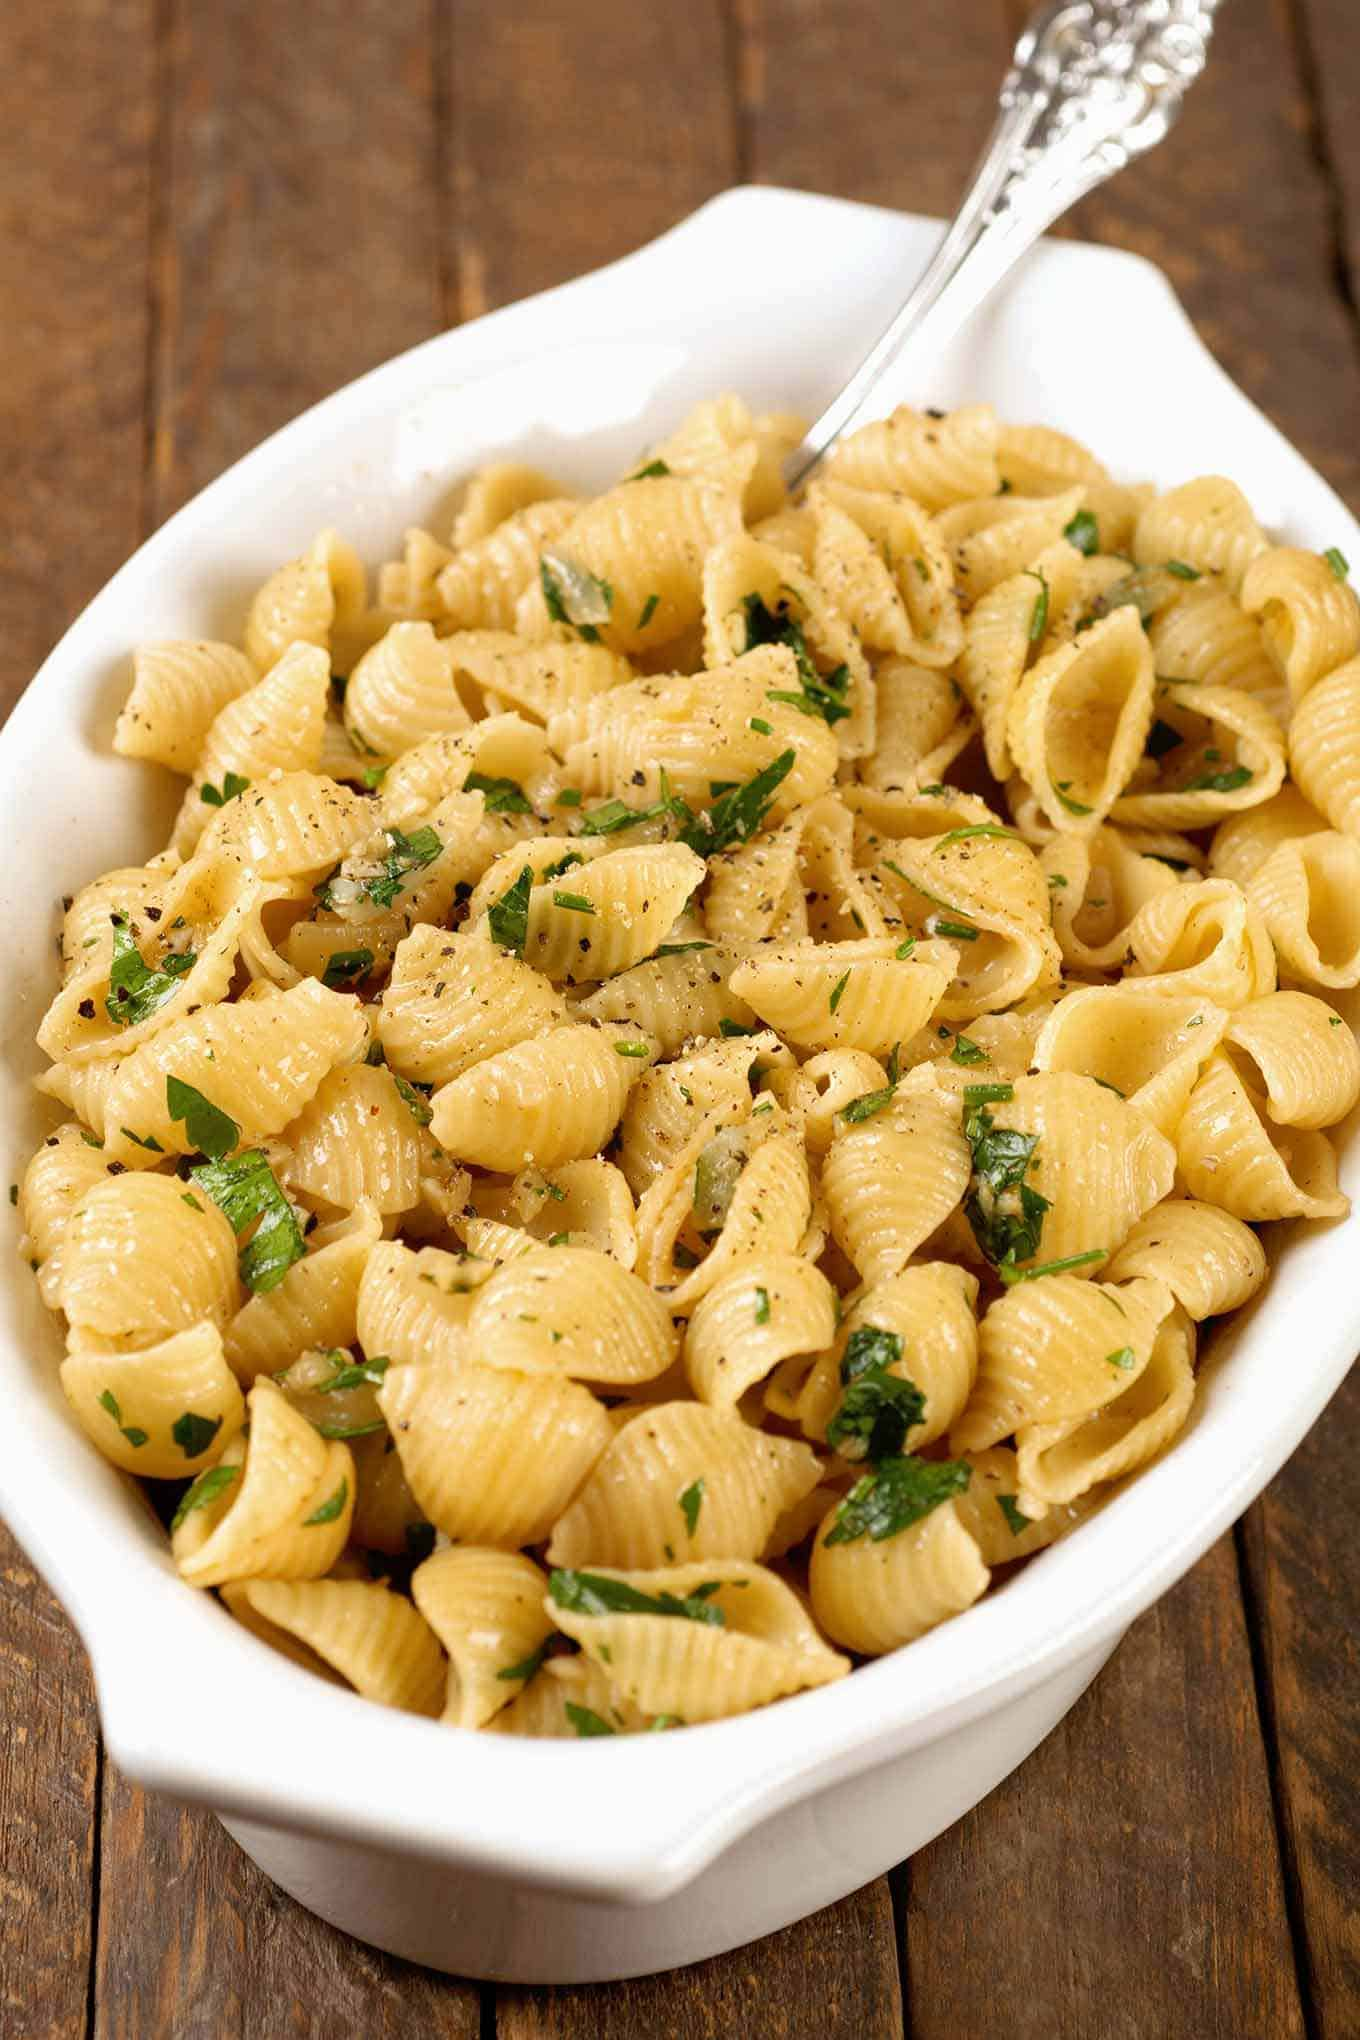 Serving dish filled with pasta shells in garlic butter garnished with parsley and cracked black pepper.